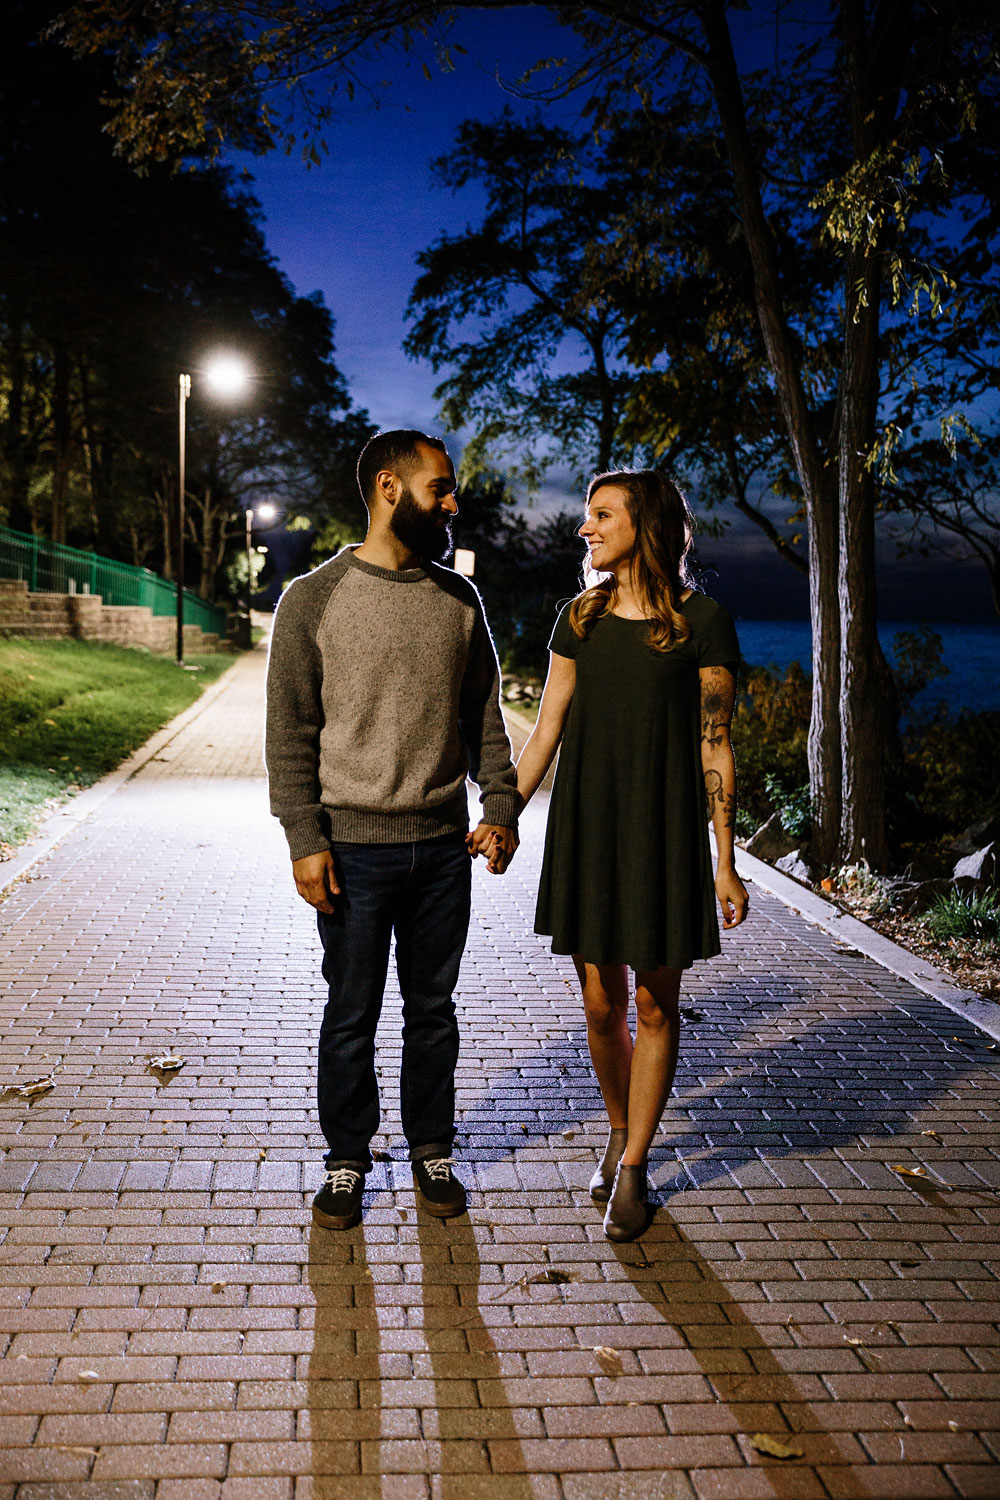 rocky-river-reservation-engagement-photography-cleveland-ohio-49.jpg